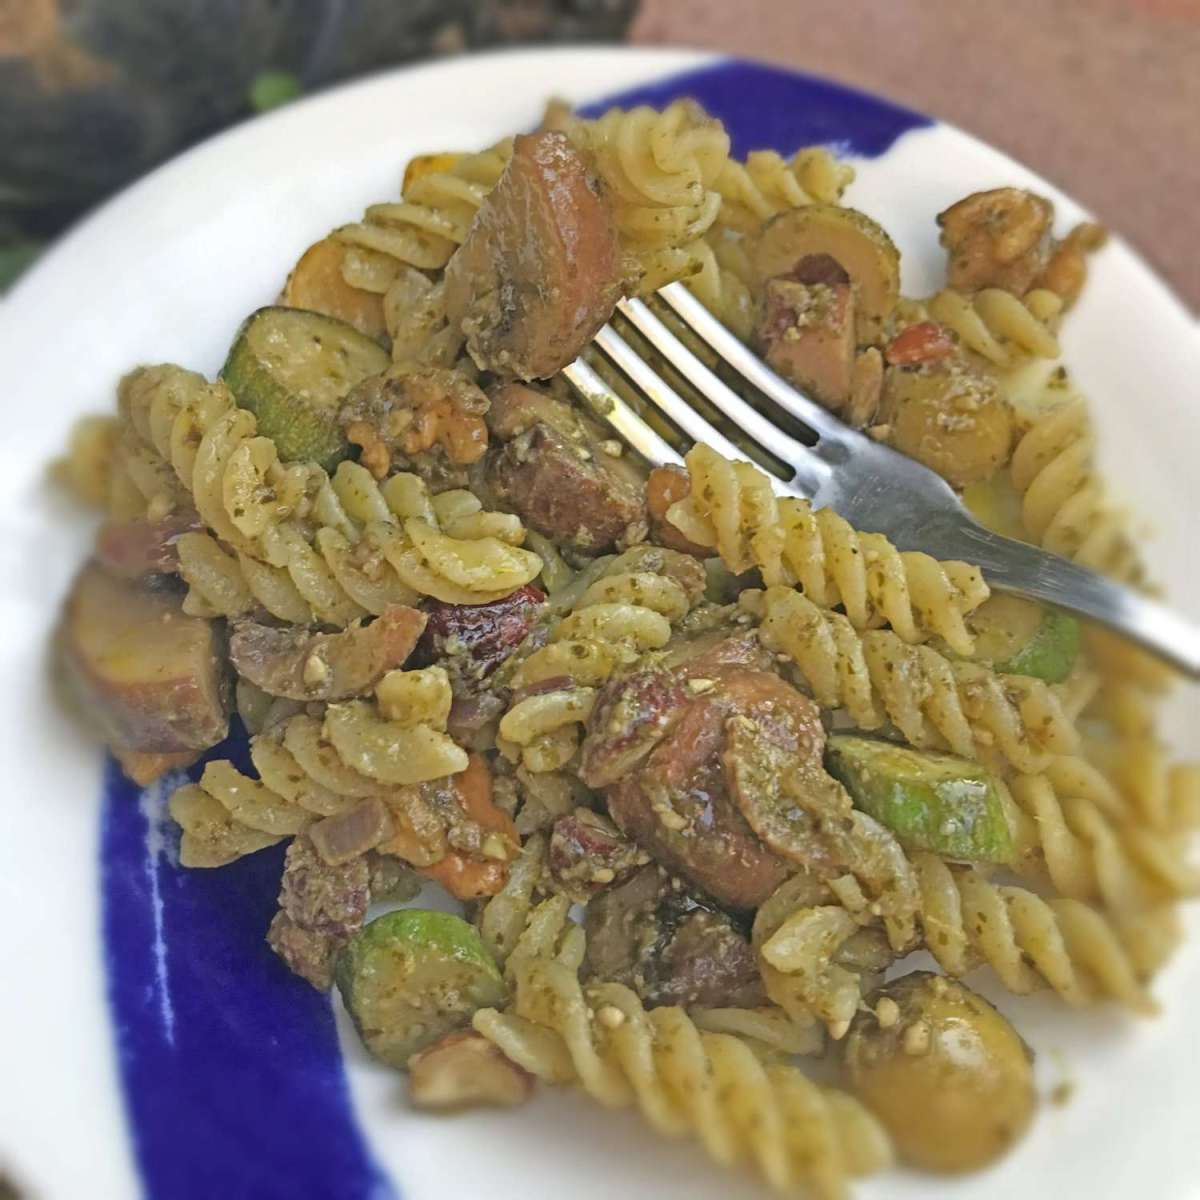 Vegan Pesto and Nut Pasta Sauce